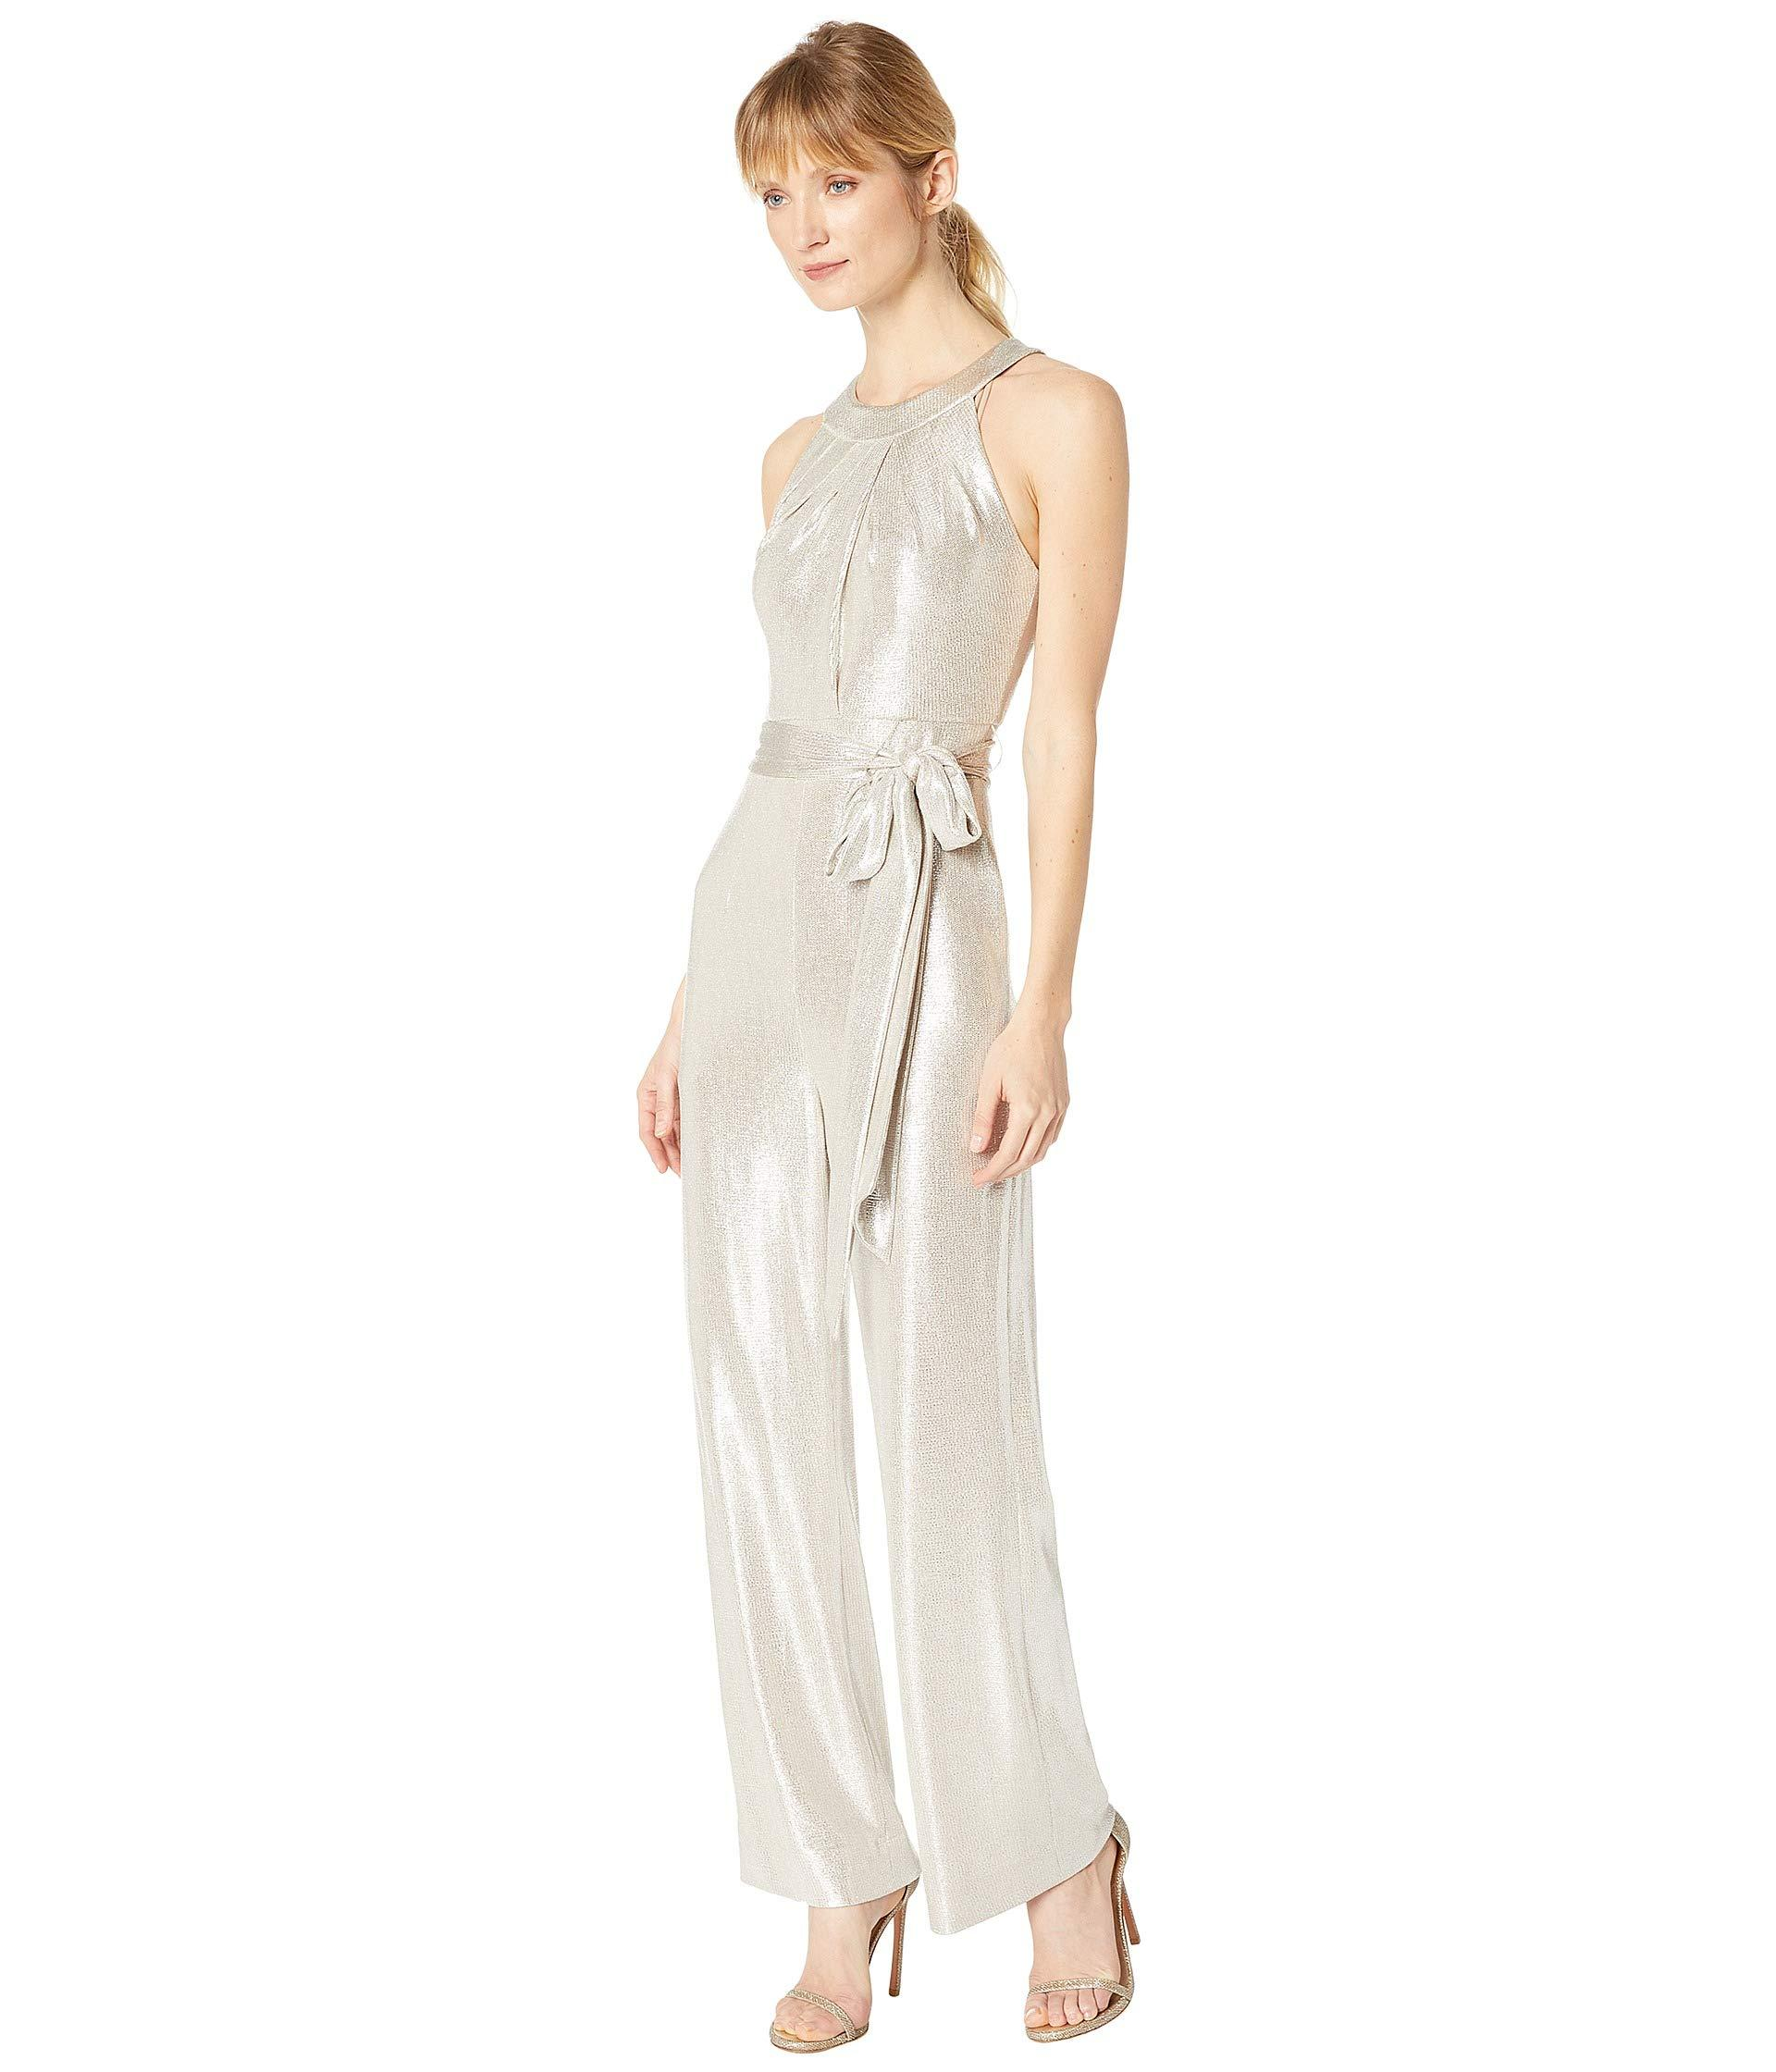 7ca603852623 Lyst - Tahari Sleeveless Foil Knit Jumpsuit in White - Save 16%